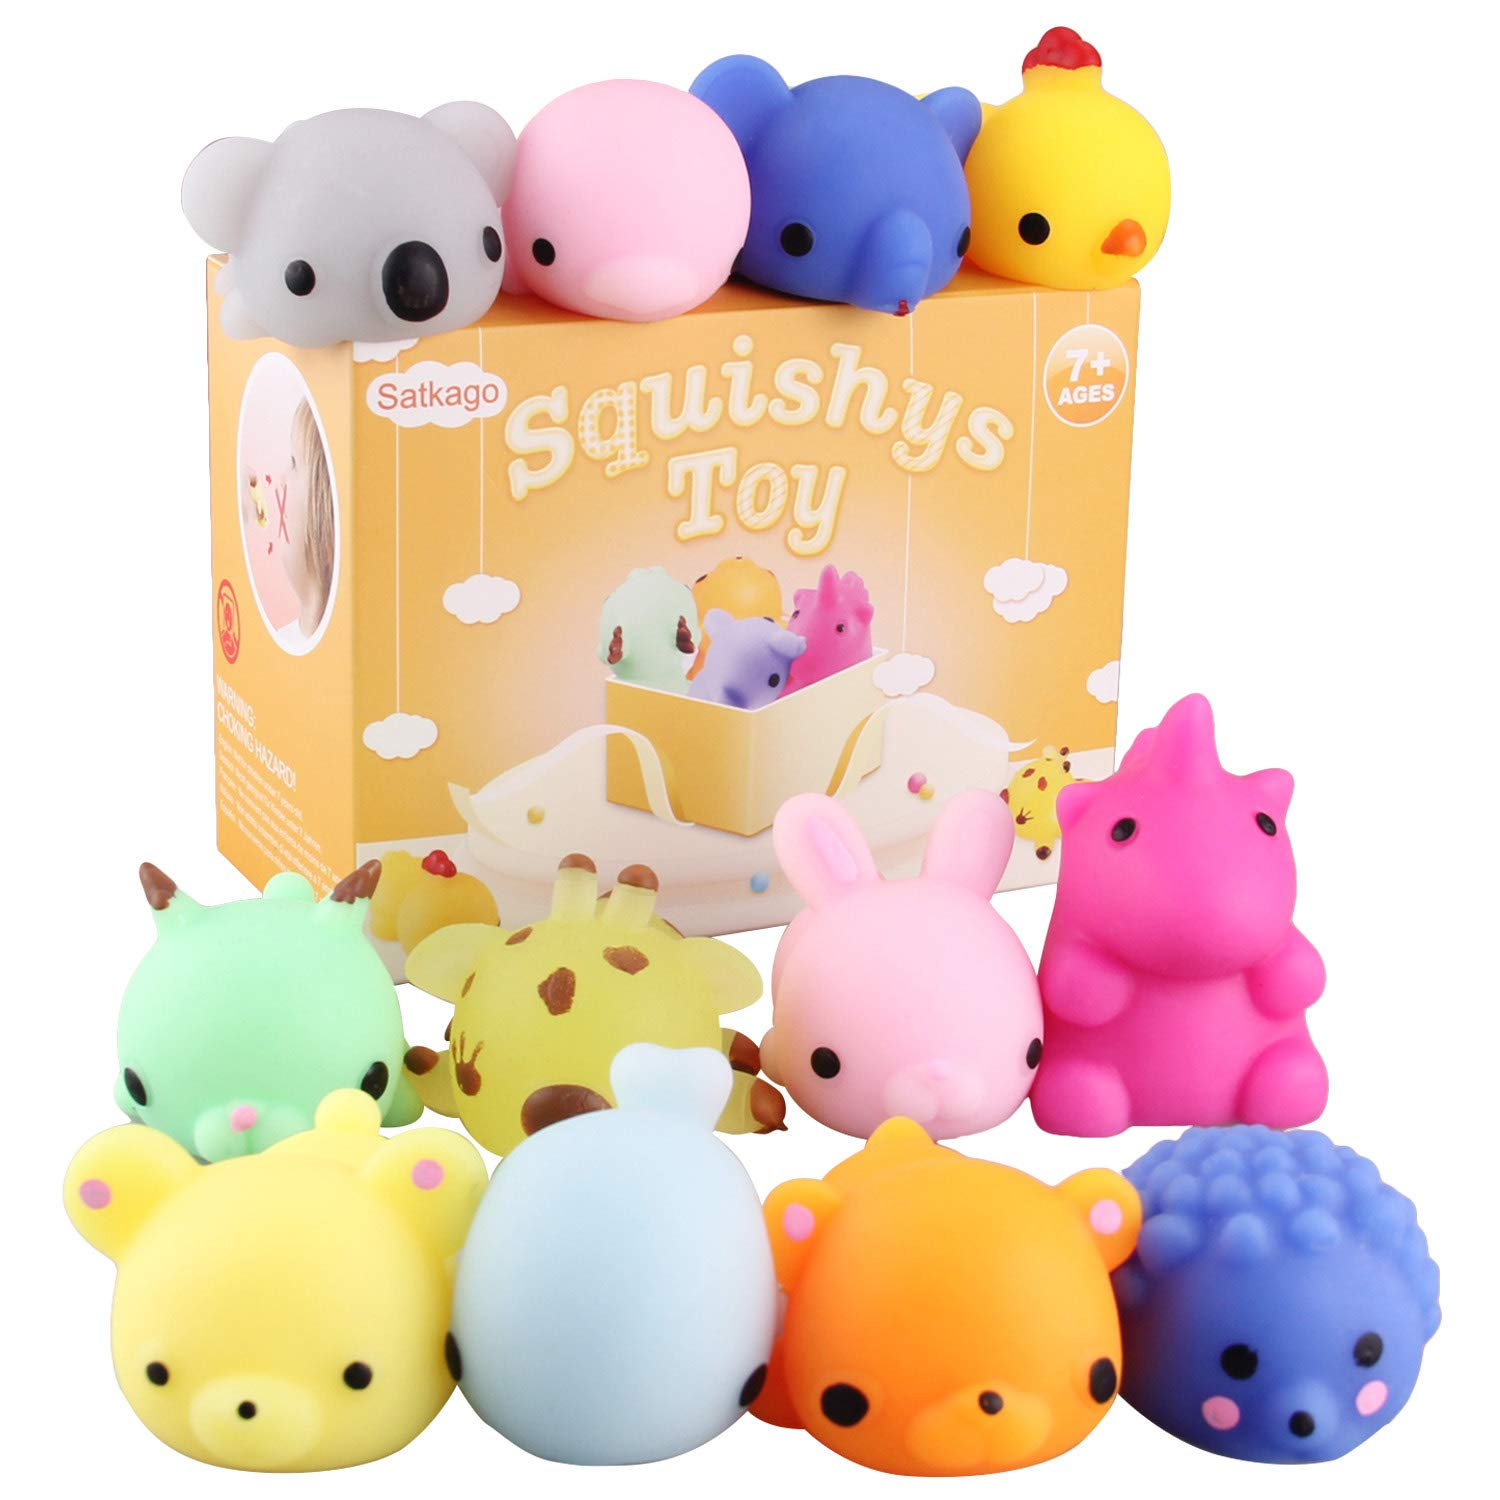 Satkago Big Squishies Toys, 12Pcs Upgrade Size Mochi Squishies Soft Stress Relief Toys for Children Adults